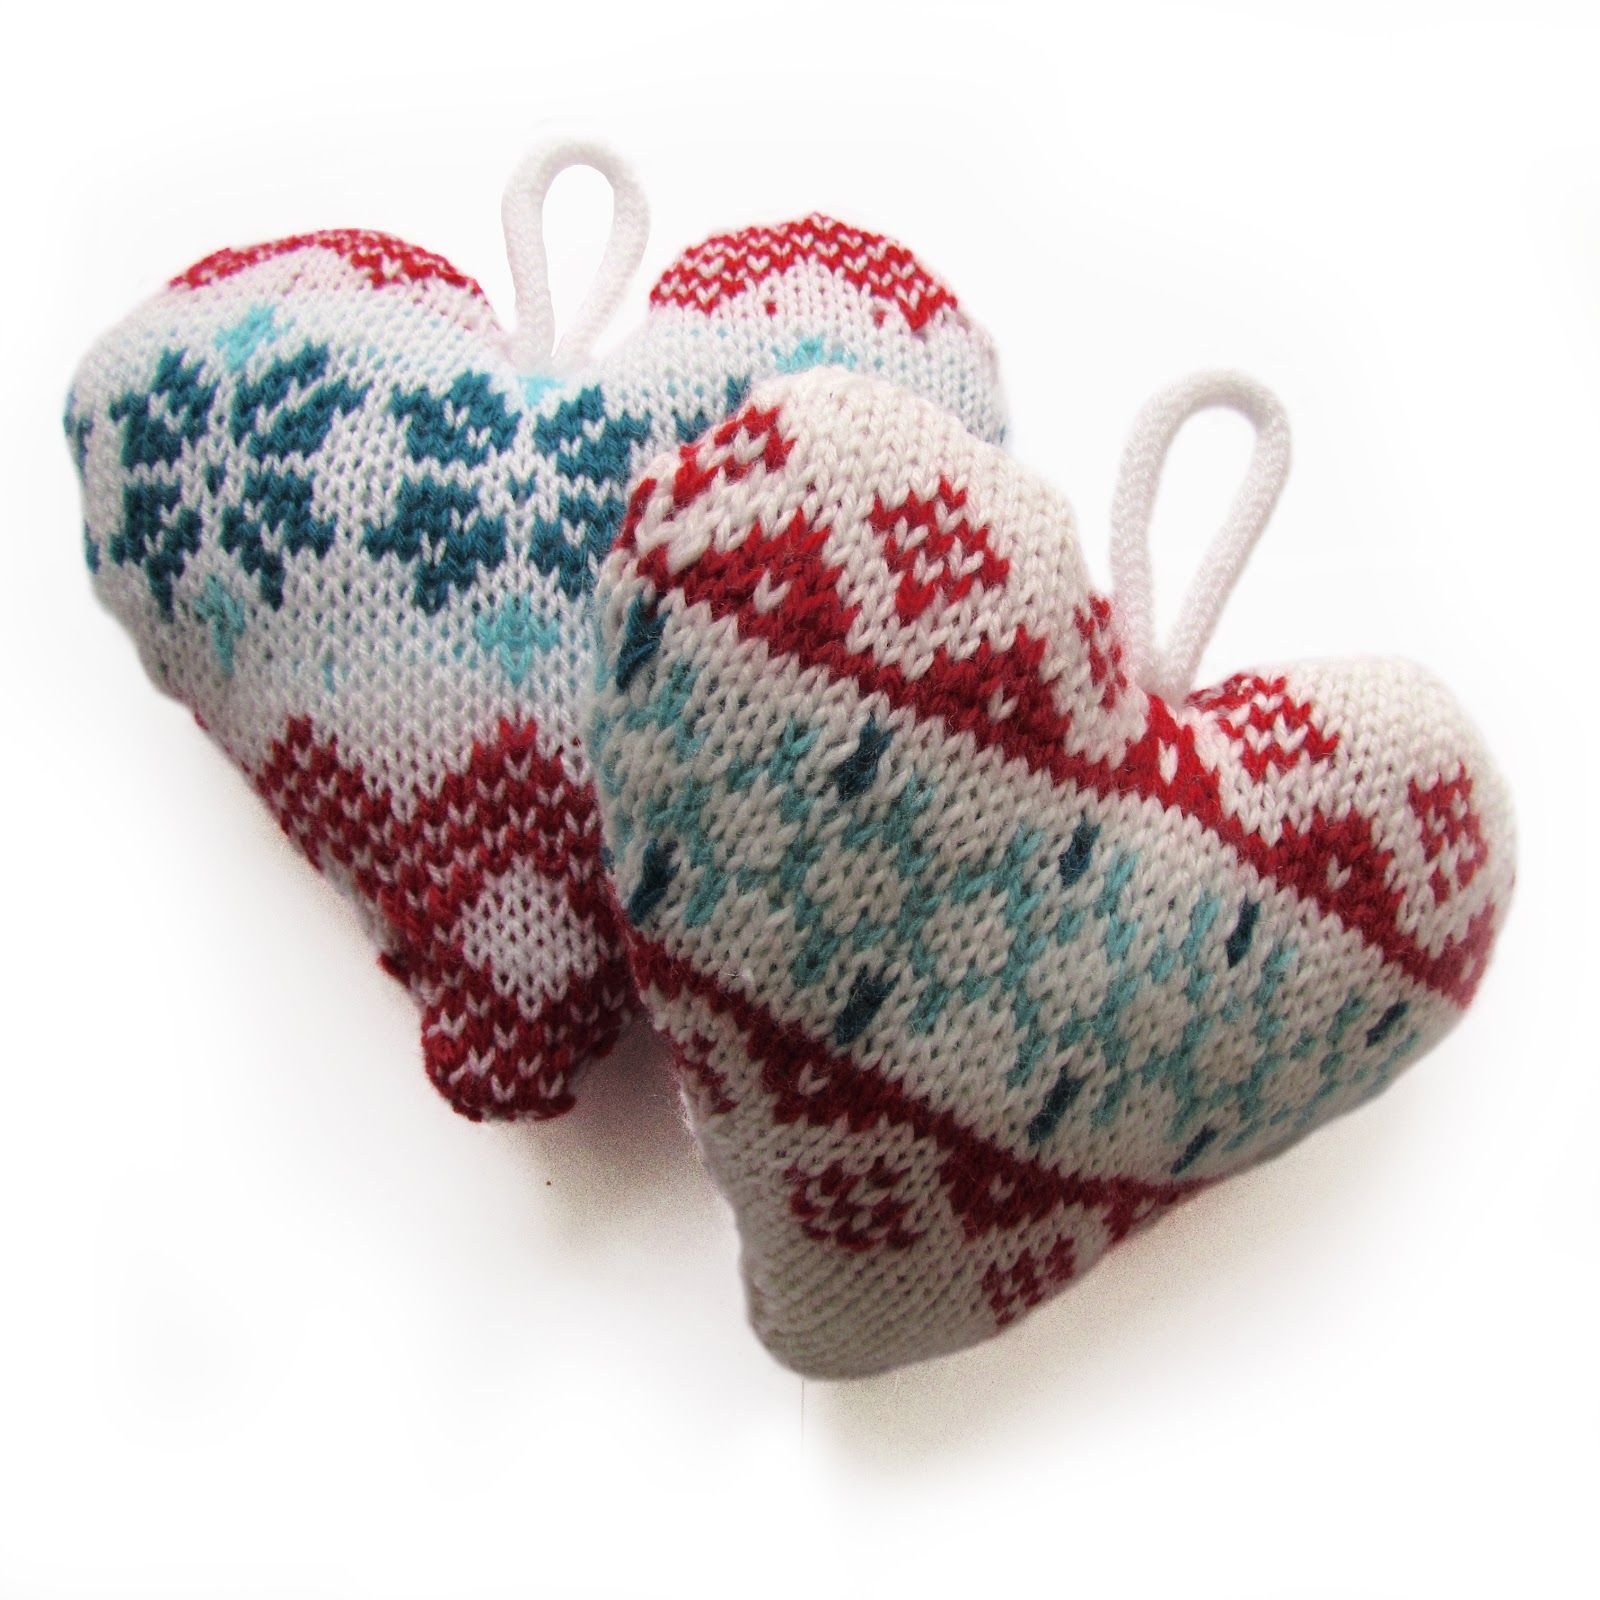 Free knitting charts for Nordic ornaments | Crafts | Pinterest ...